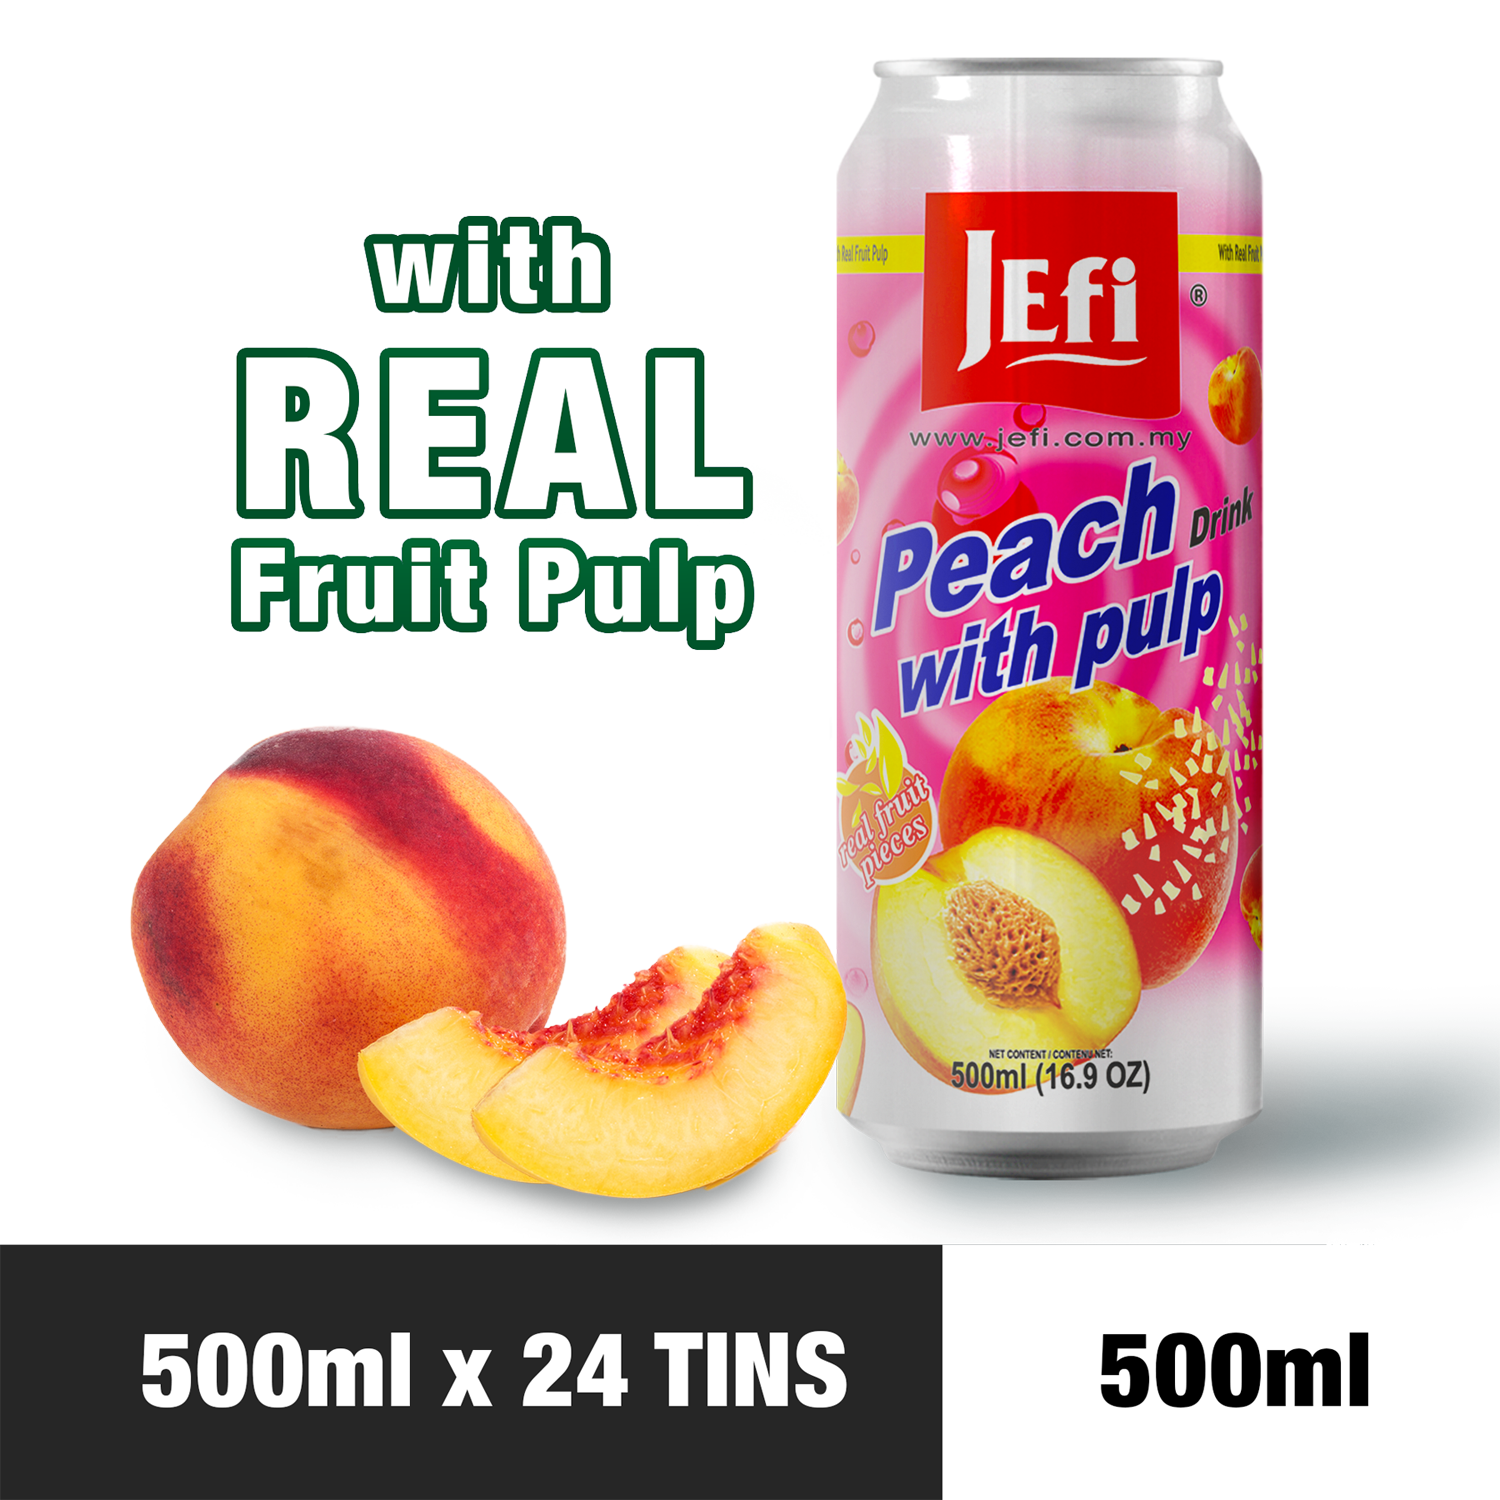 JEFI Peach Drink with Real Fruit Pulp (500ml x 24tins)